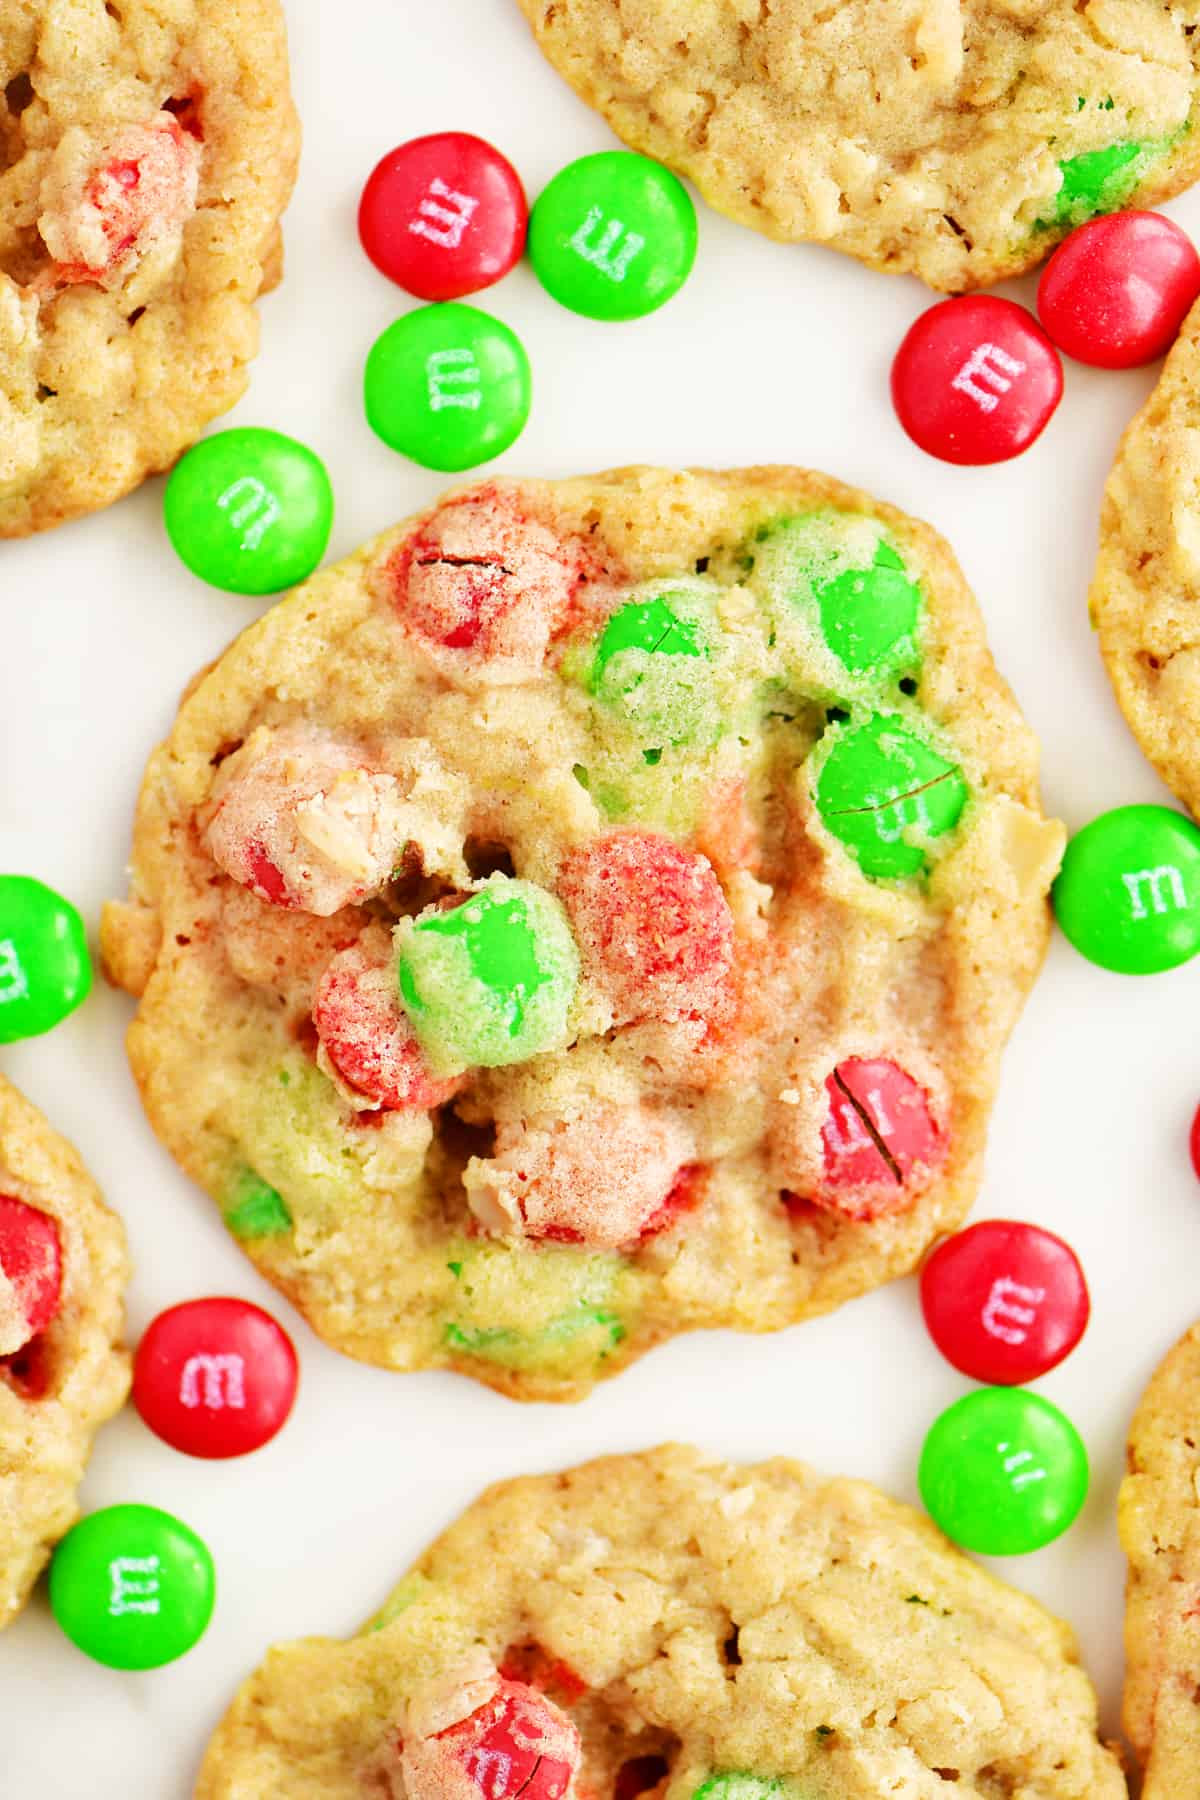 Christmas Oatmeal Cookies  Christmas Oatmeal M & M Cookies The Gunny Sack